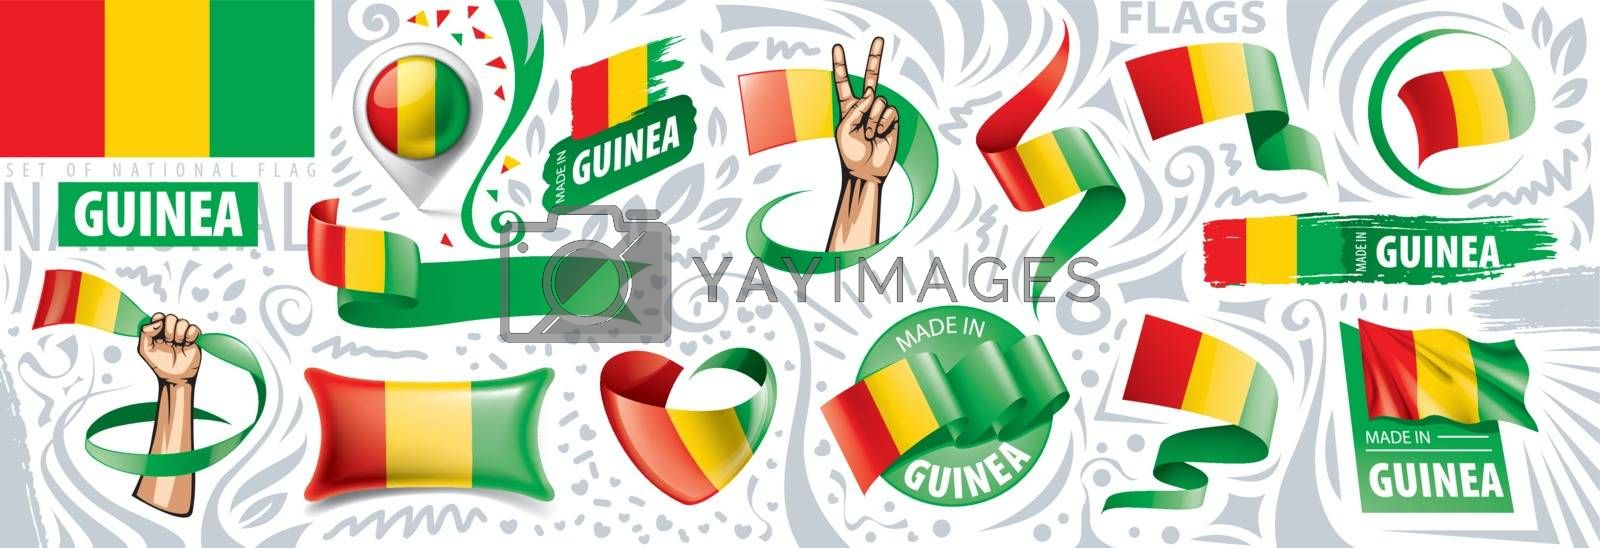 Vector set of the national flag of Guinea in various creative designs.